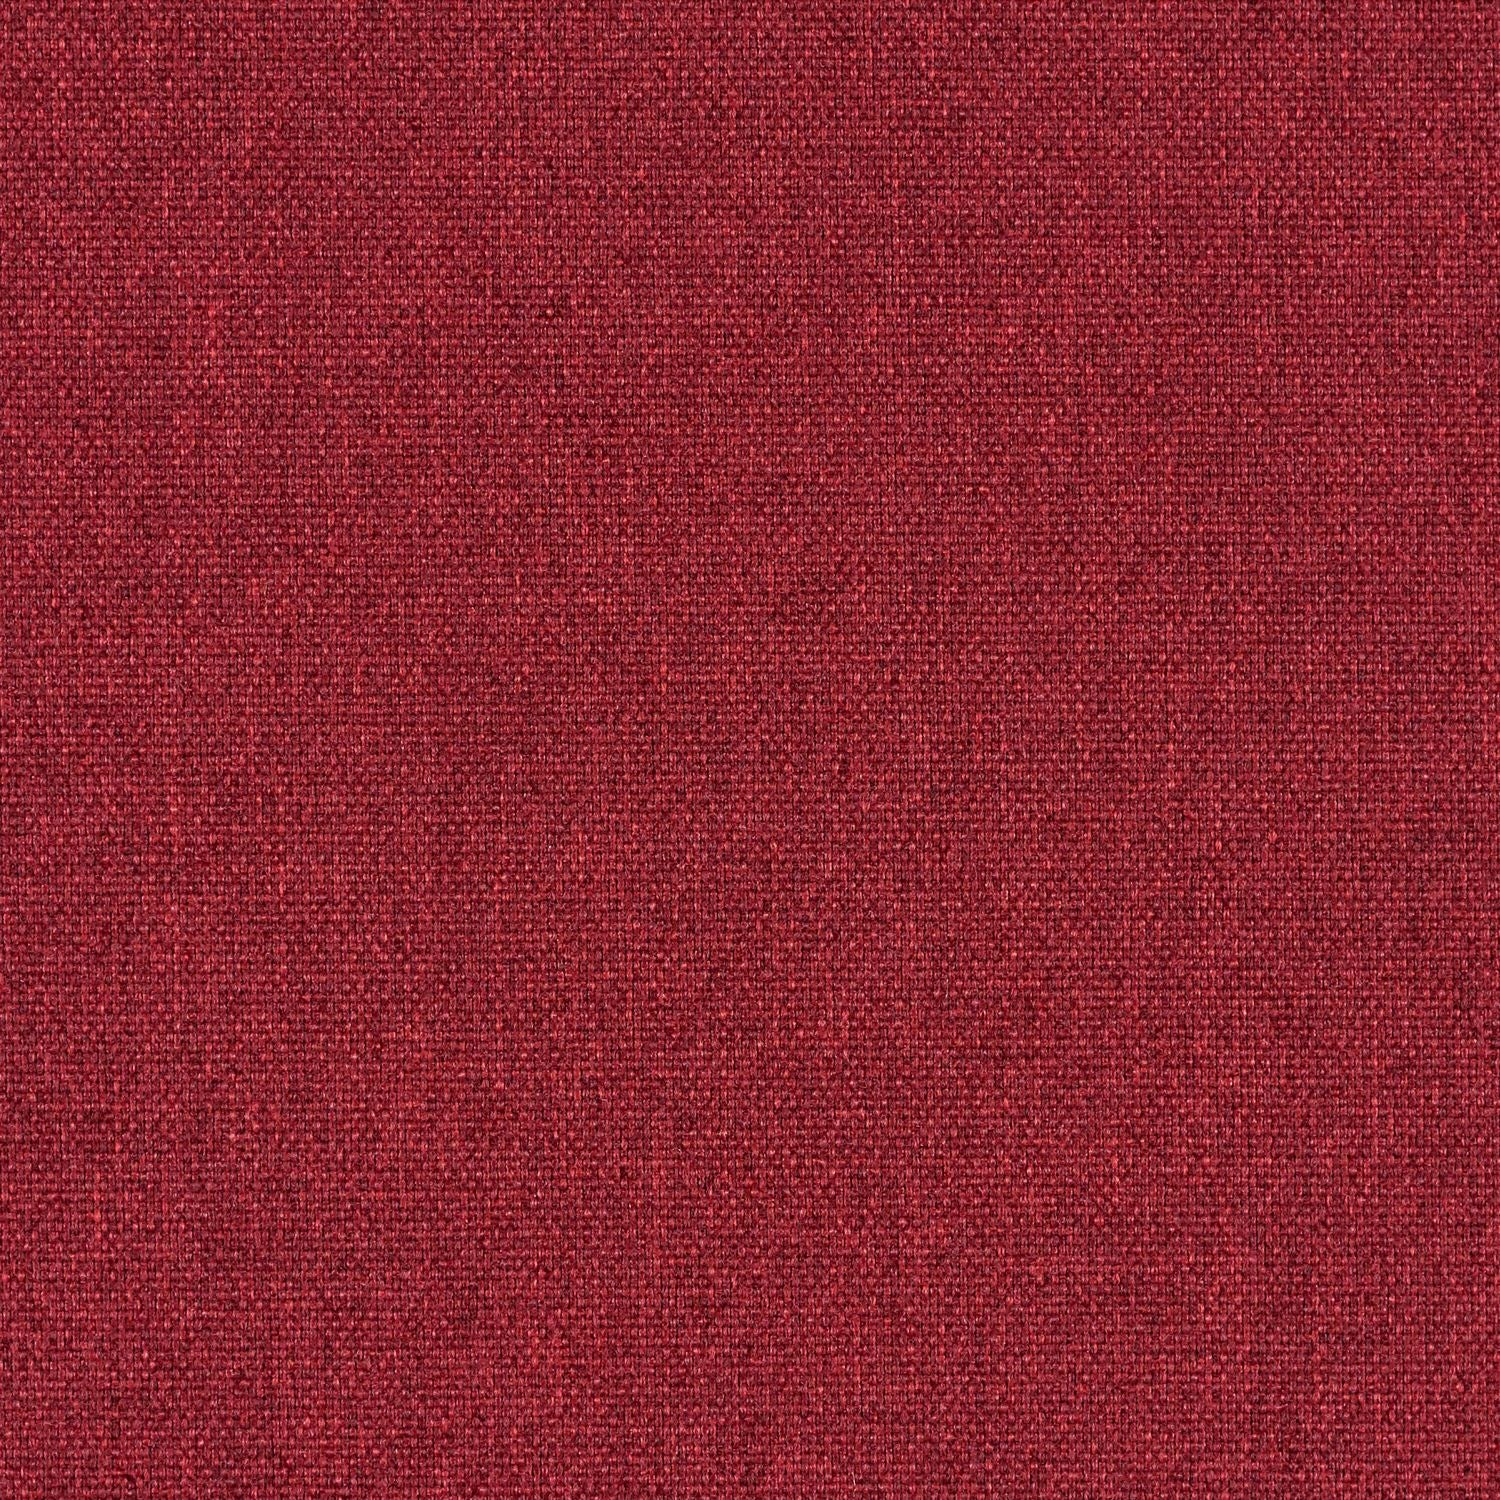 Heather Tech - Madder Tech - 4059 - 15